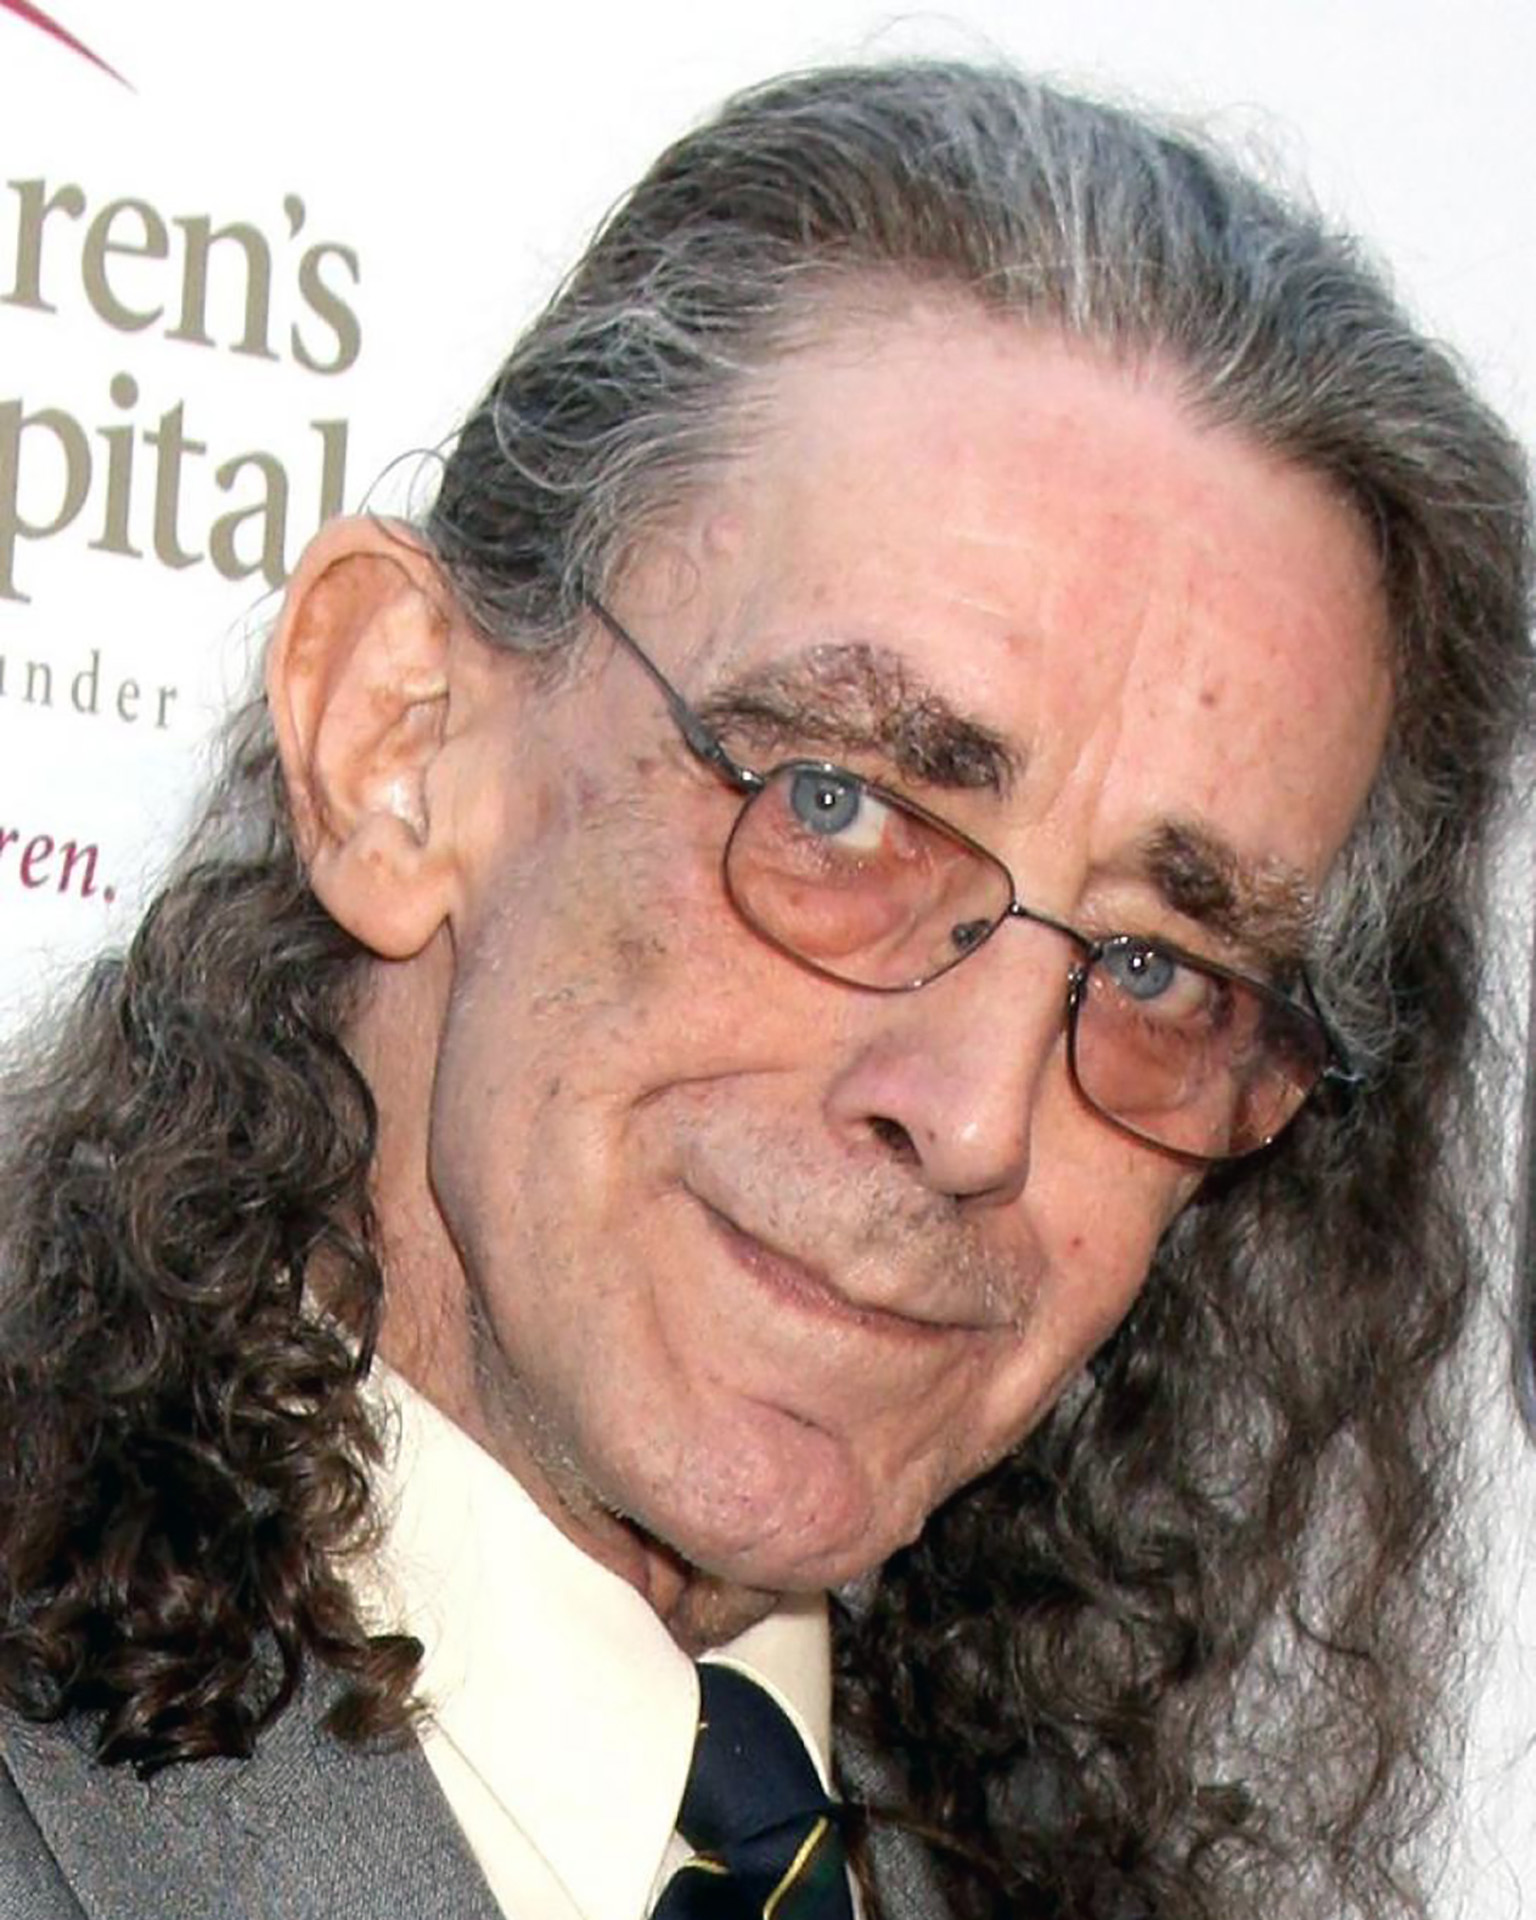 Peter Mayhew (born 1944)